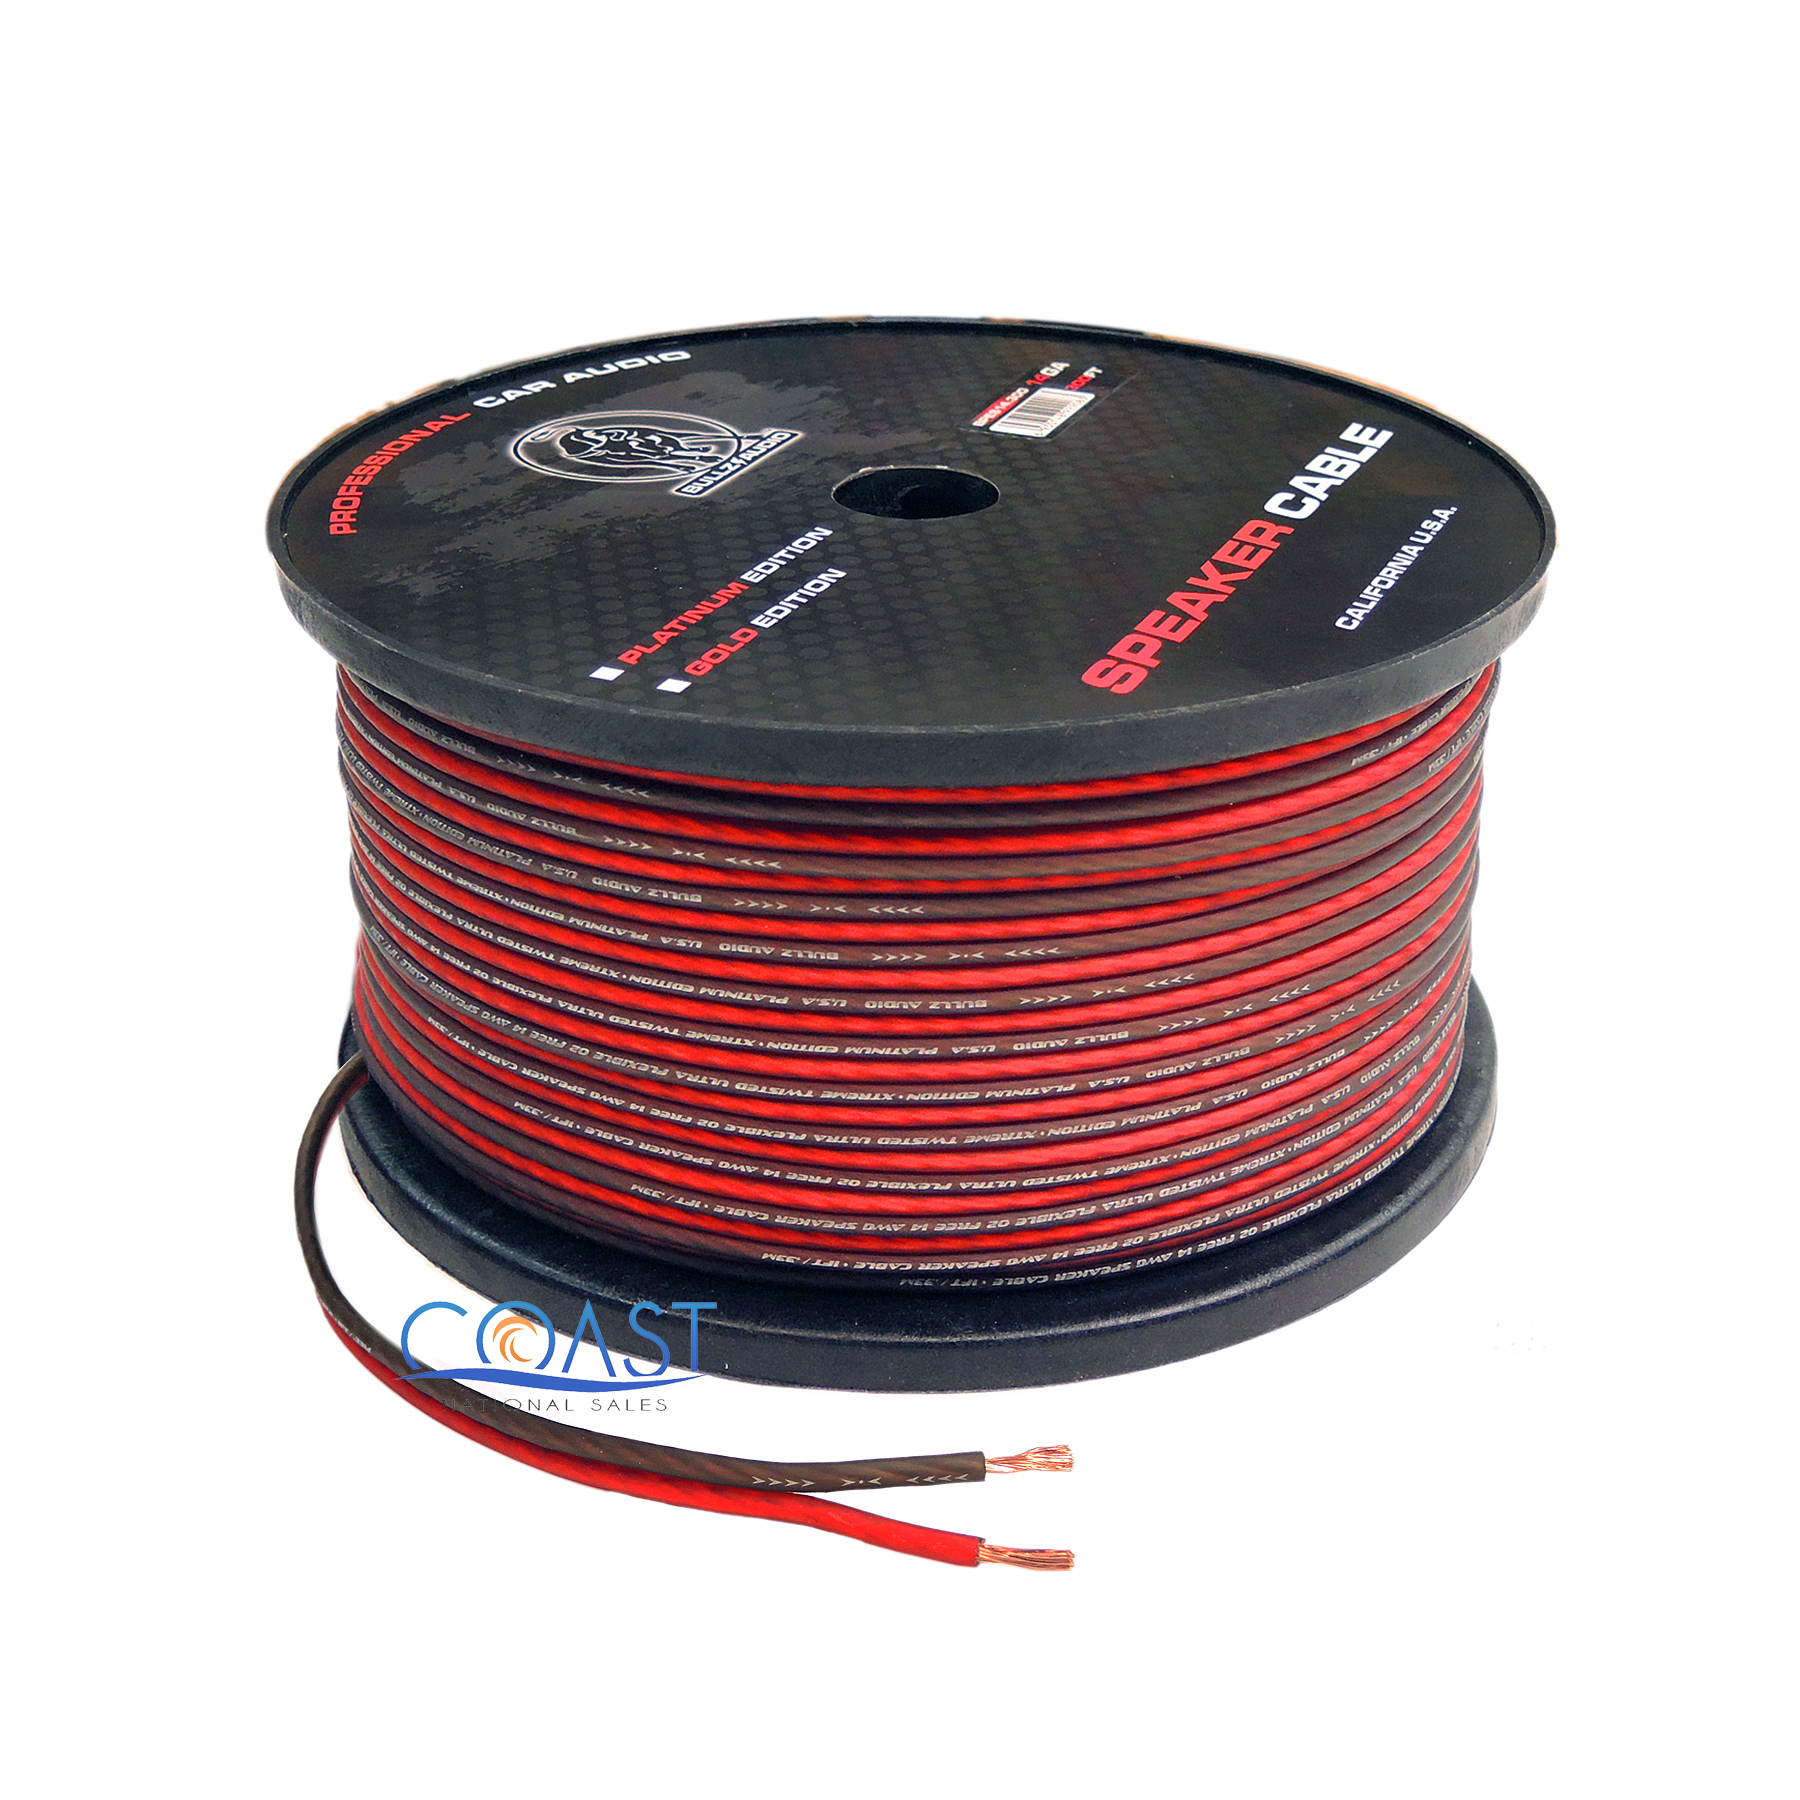 Details about Red 200 Ft True 12 Gauge AWG Car Home Audio Speaker Wire  Cable Spool BPES12 200